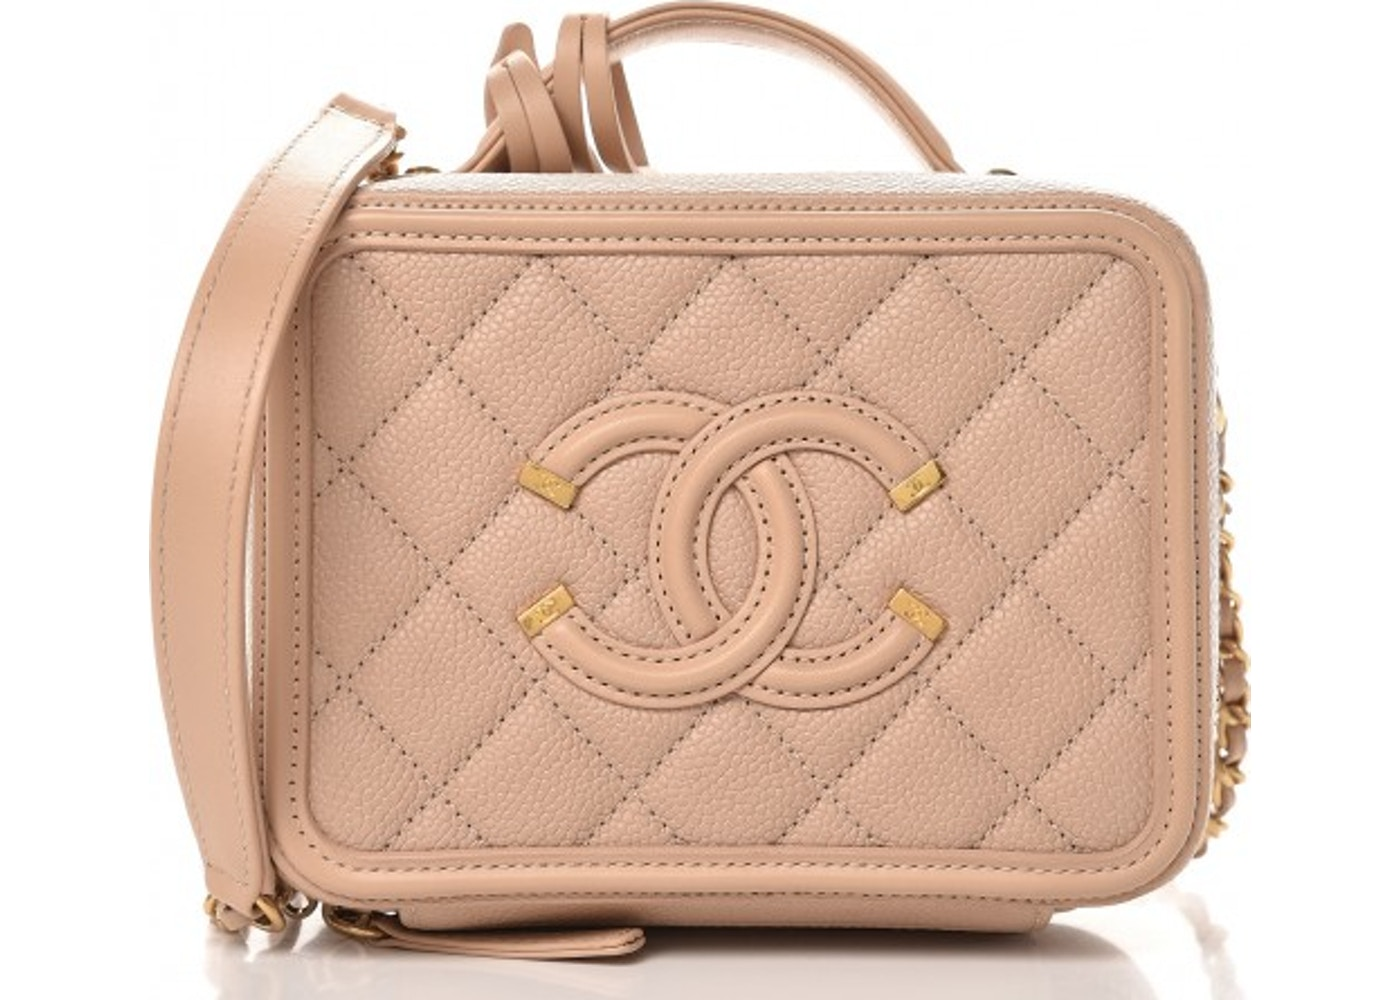 dbe56a88d0a9 Chanel CC Filigree Vanity Case Quilted Caviar Small Beige lowest ask